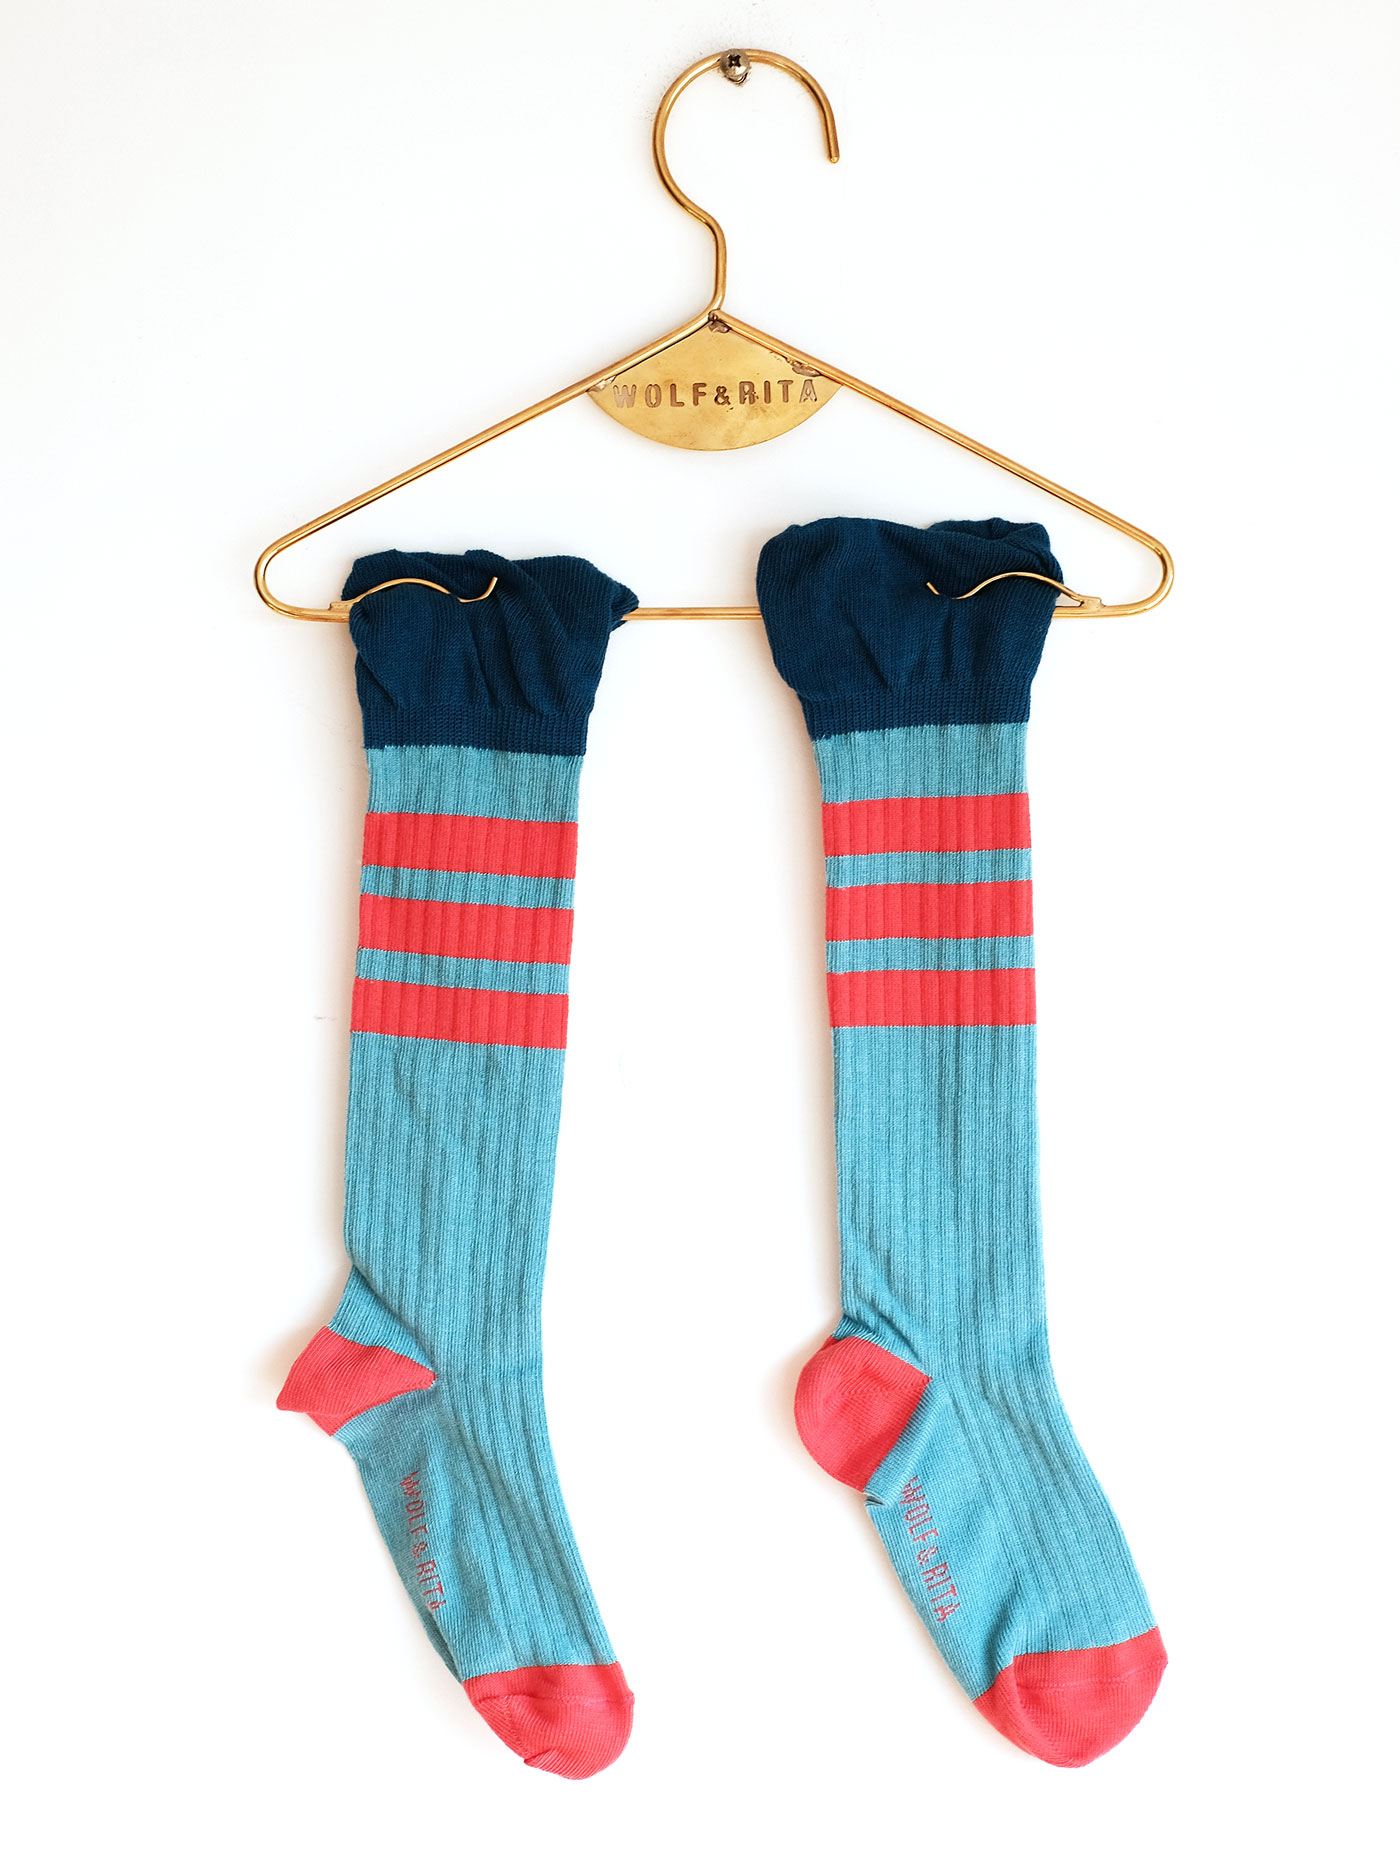 Wolf & Rita Blue - Frills Blue Socks - Clothing